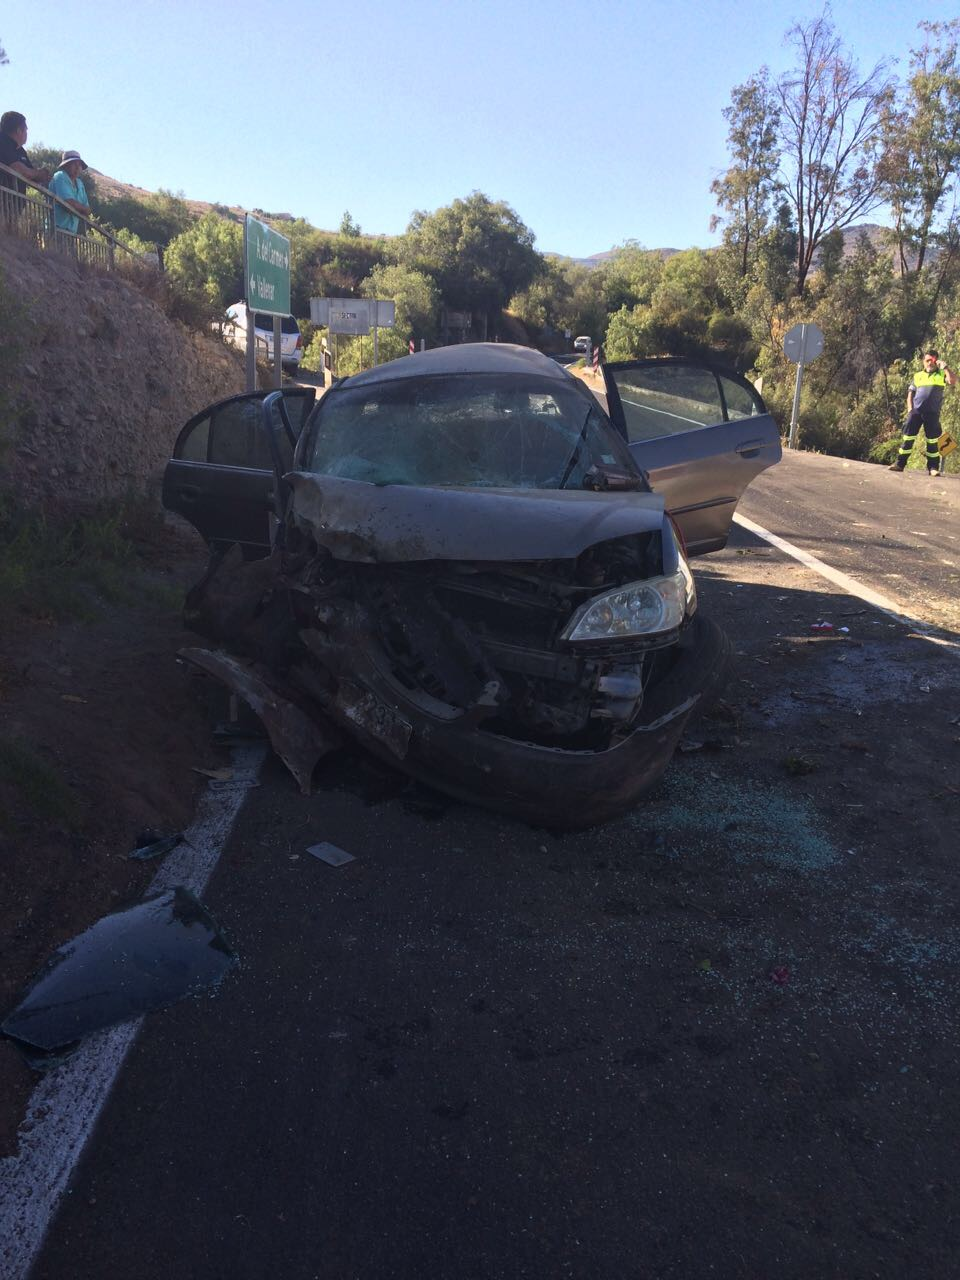 Accidente deja a tres personas graves en Vallenar